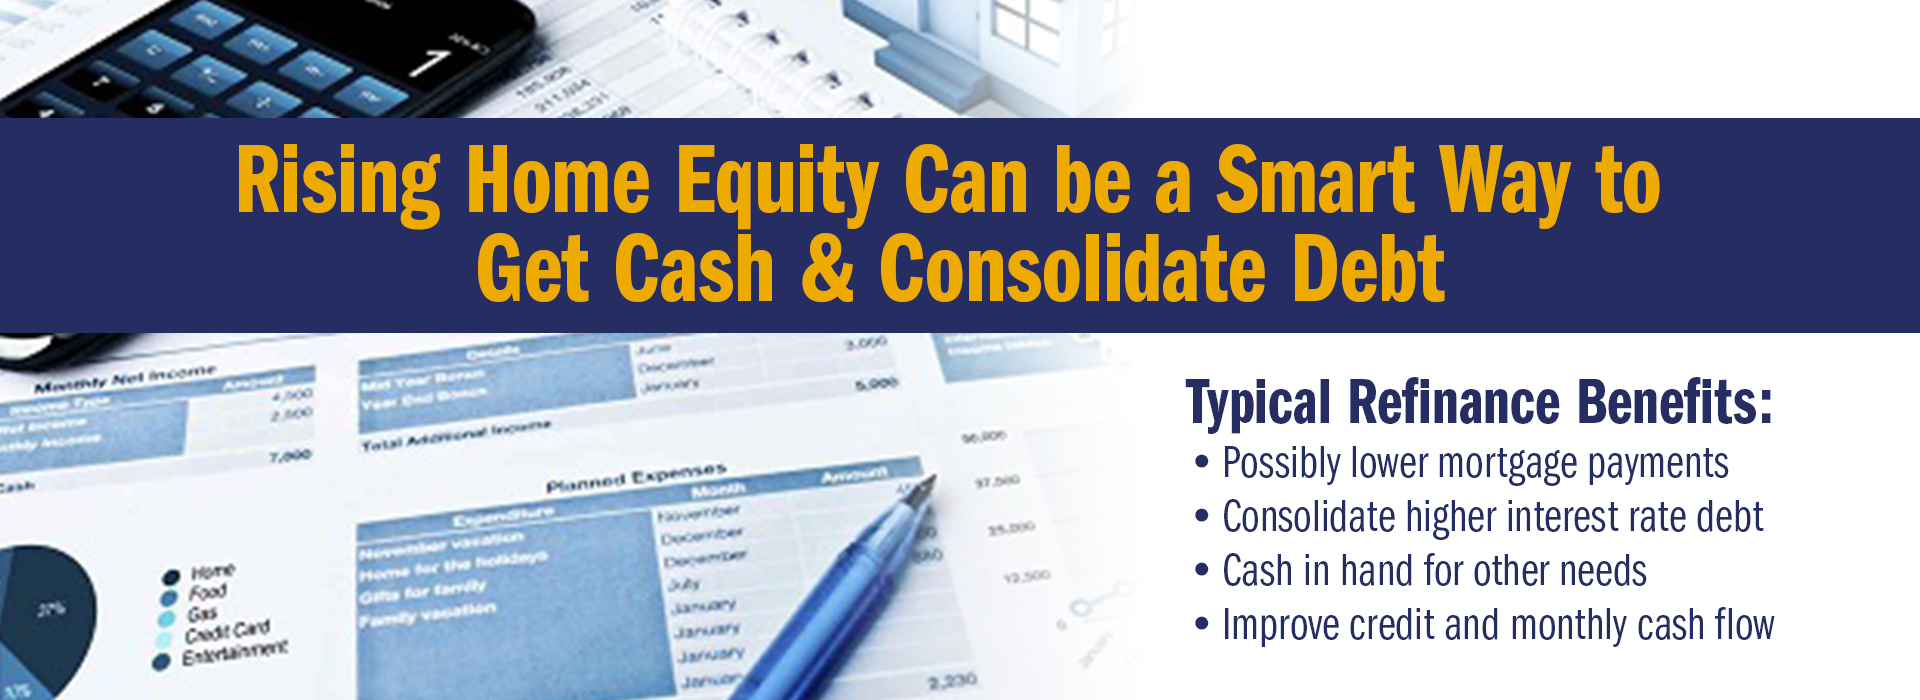 Rising Home Equity Can be a Smart Way to Get Cash & Consolidate Debt